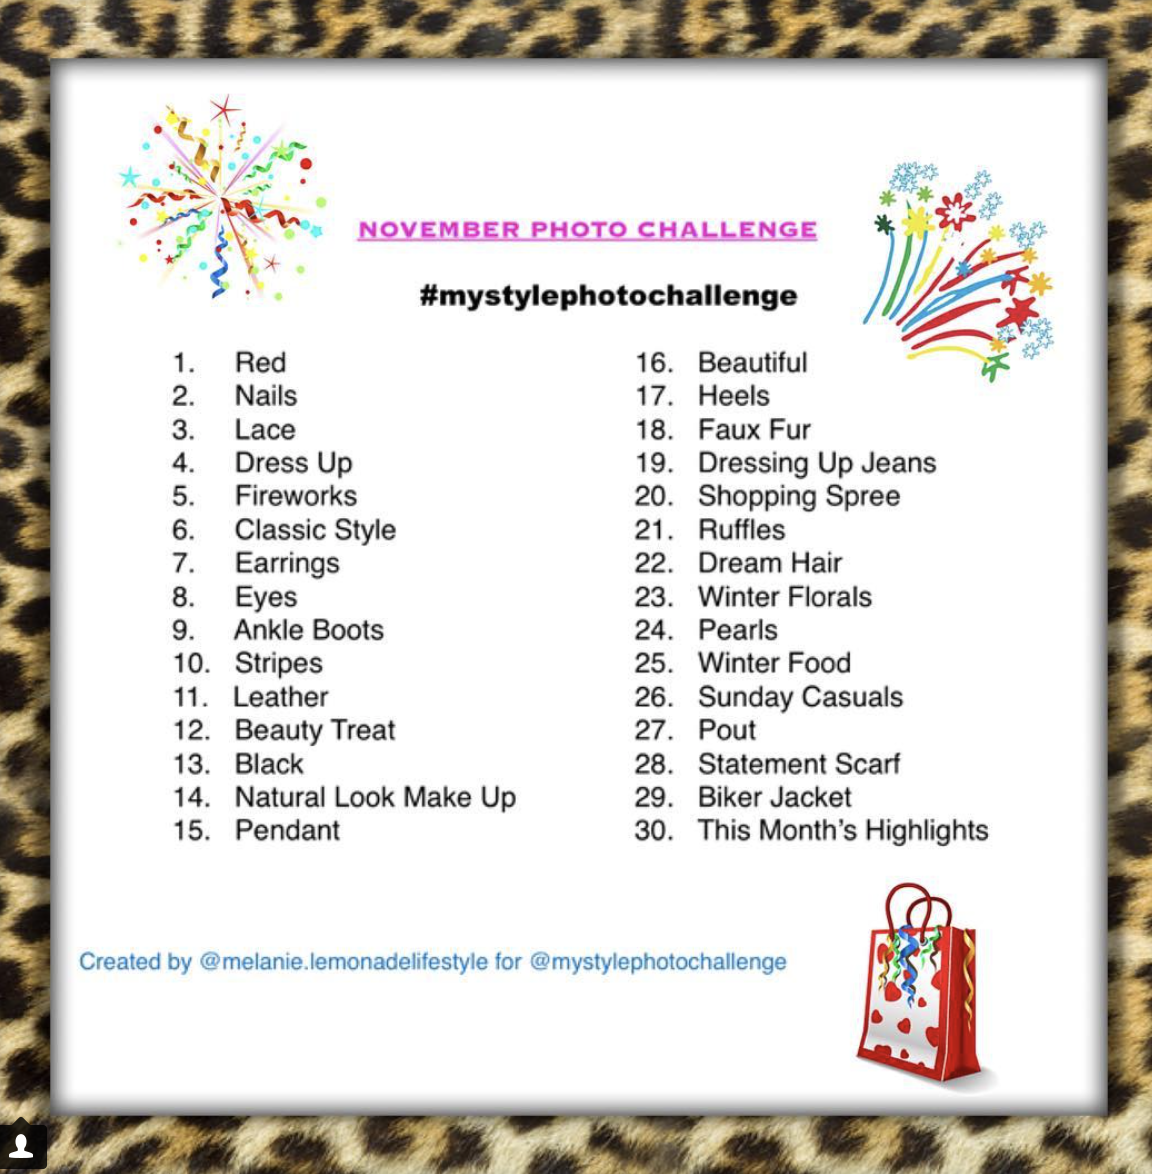 The founding Instagram hashtag game tag -  #mystylephotochallenge